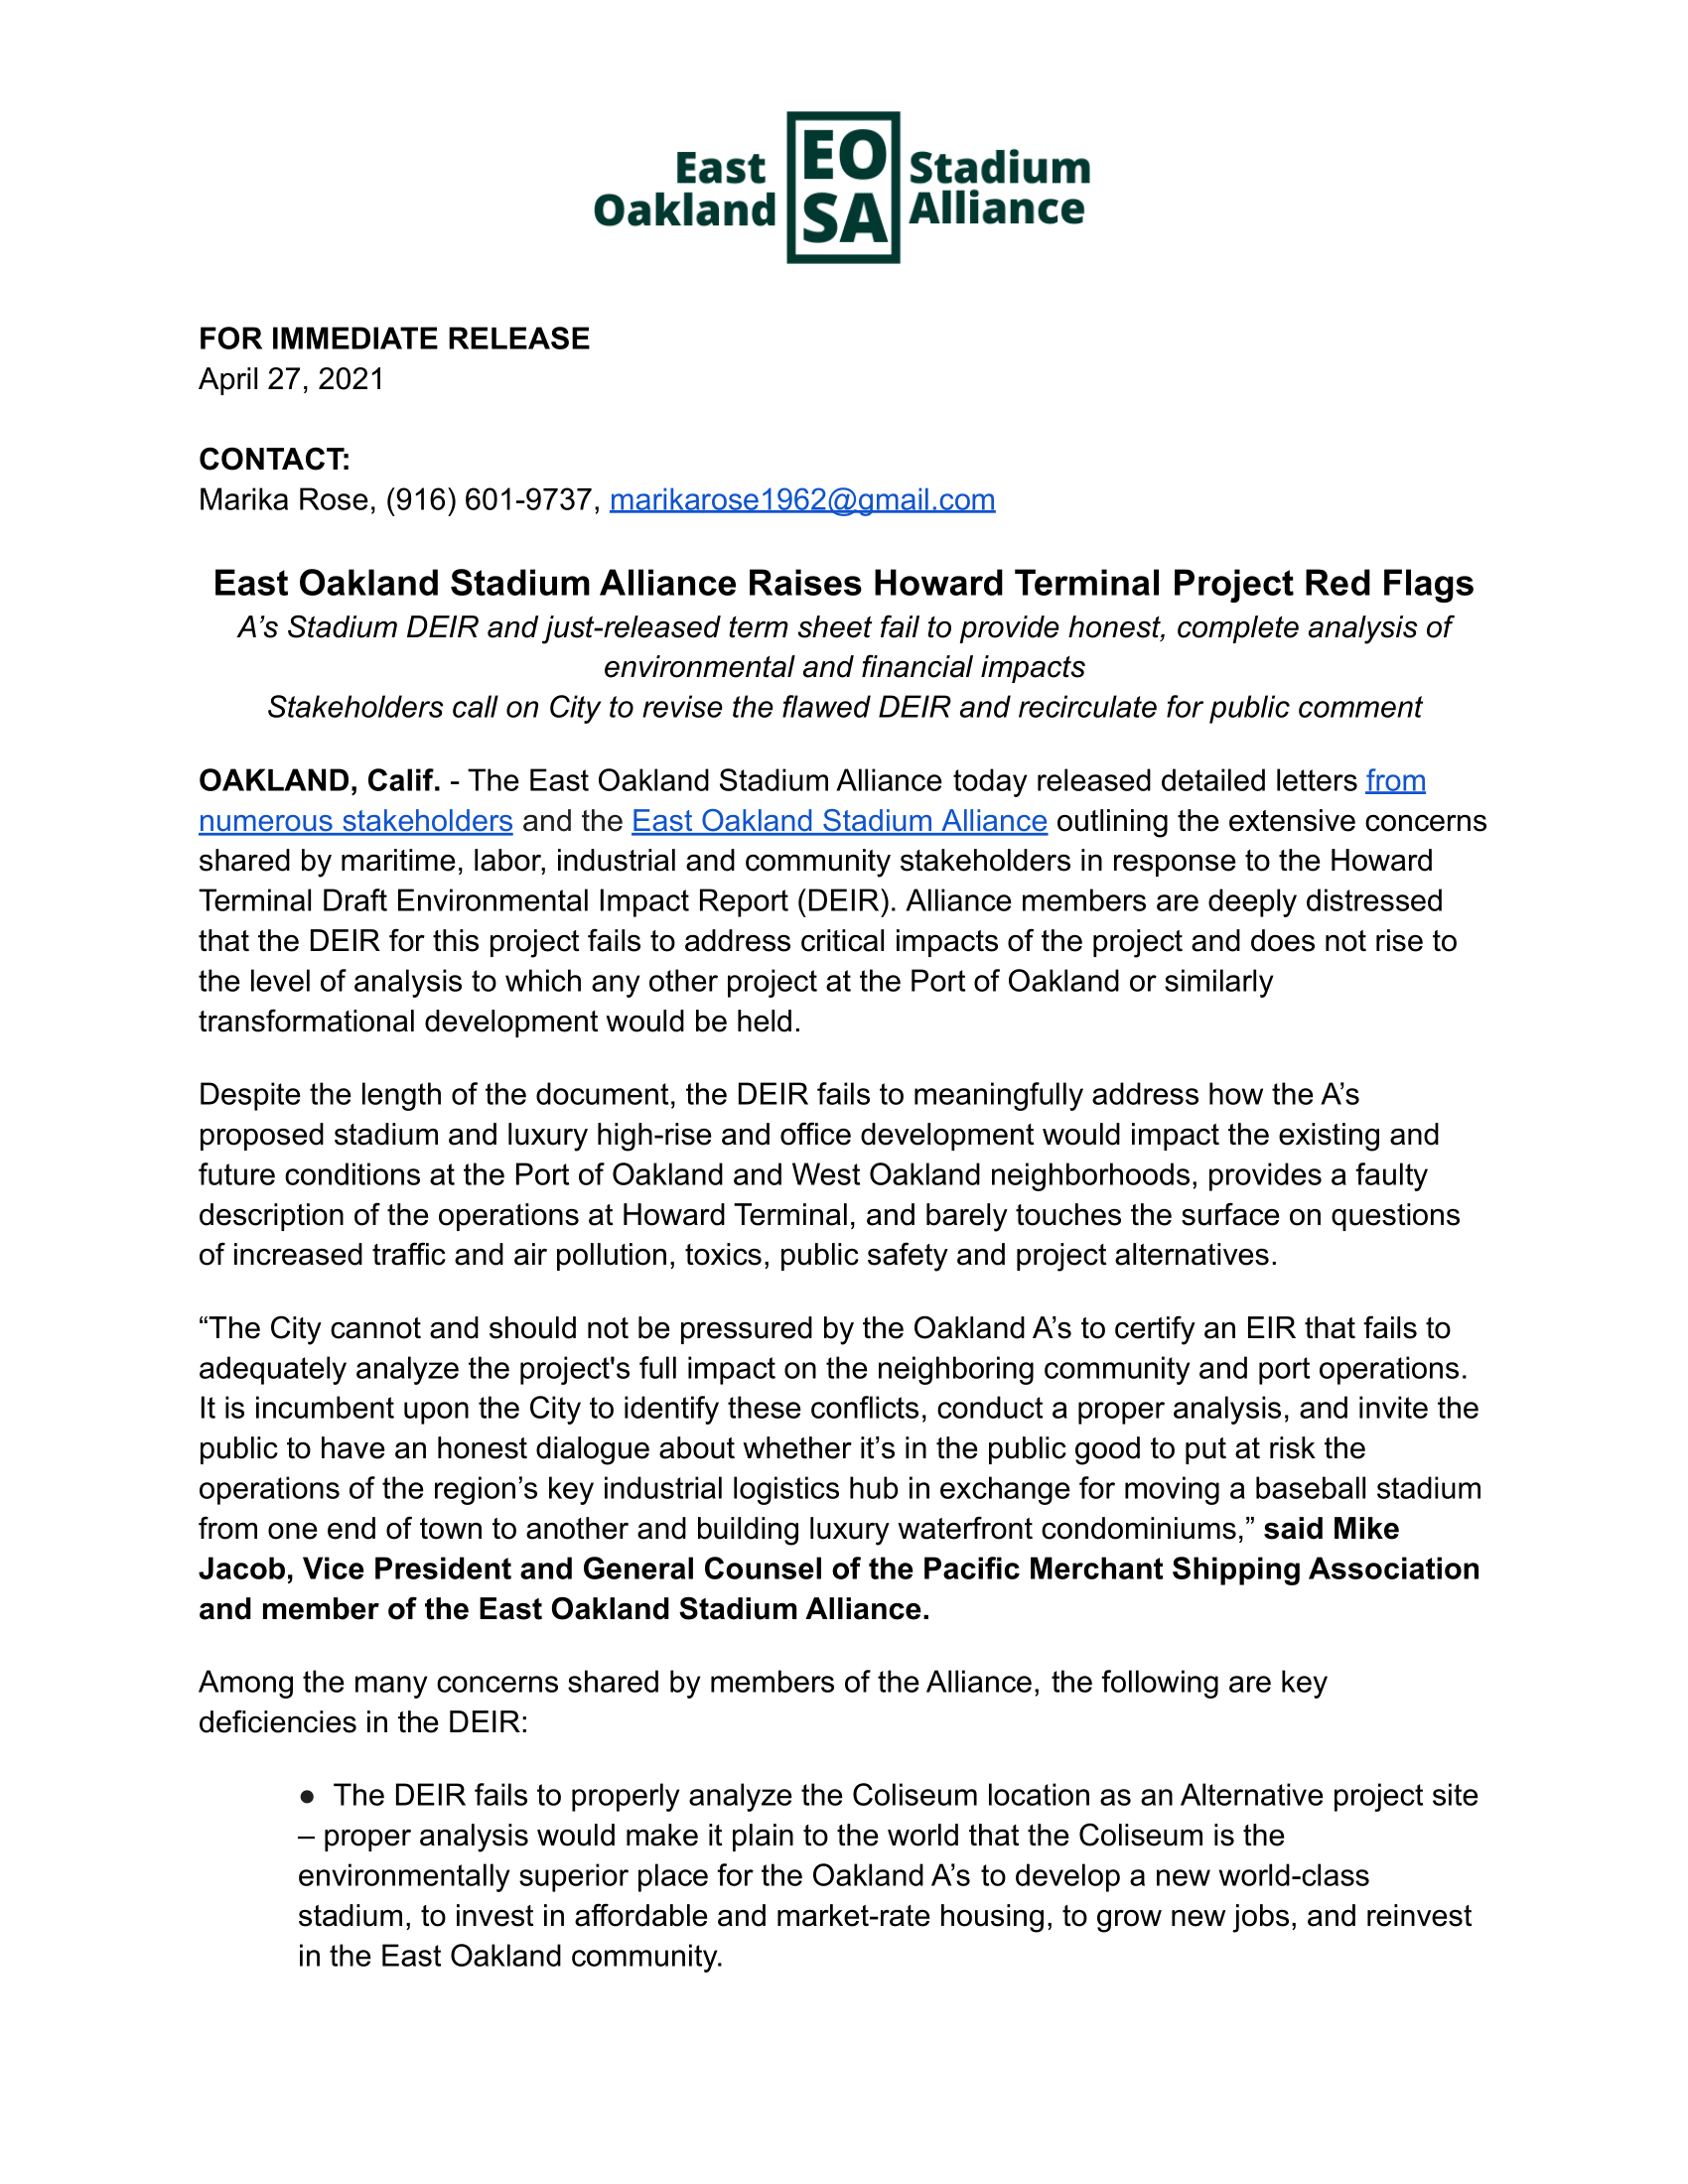 EOSA-_HT_Planning_Commission_NR_(1)-1.png